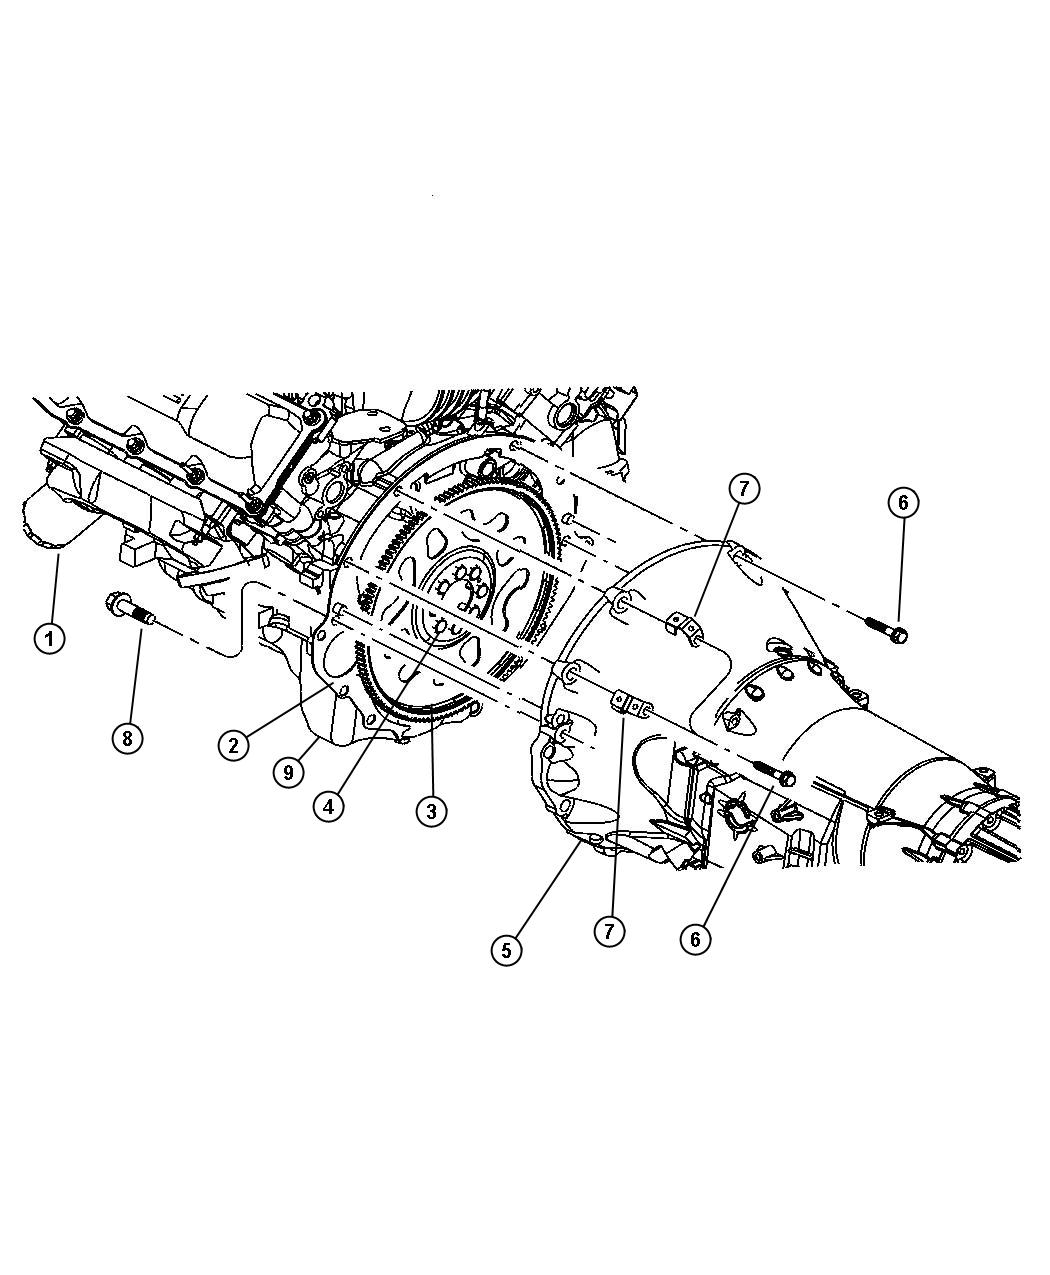 Jeep Grand Cherokee Transmission, transmission kit. With